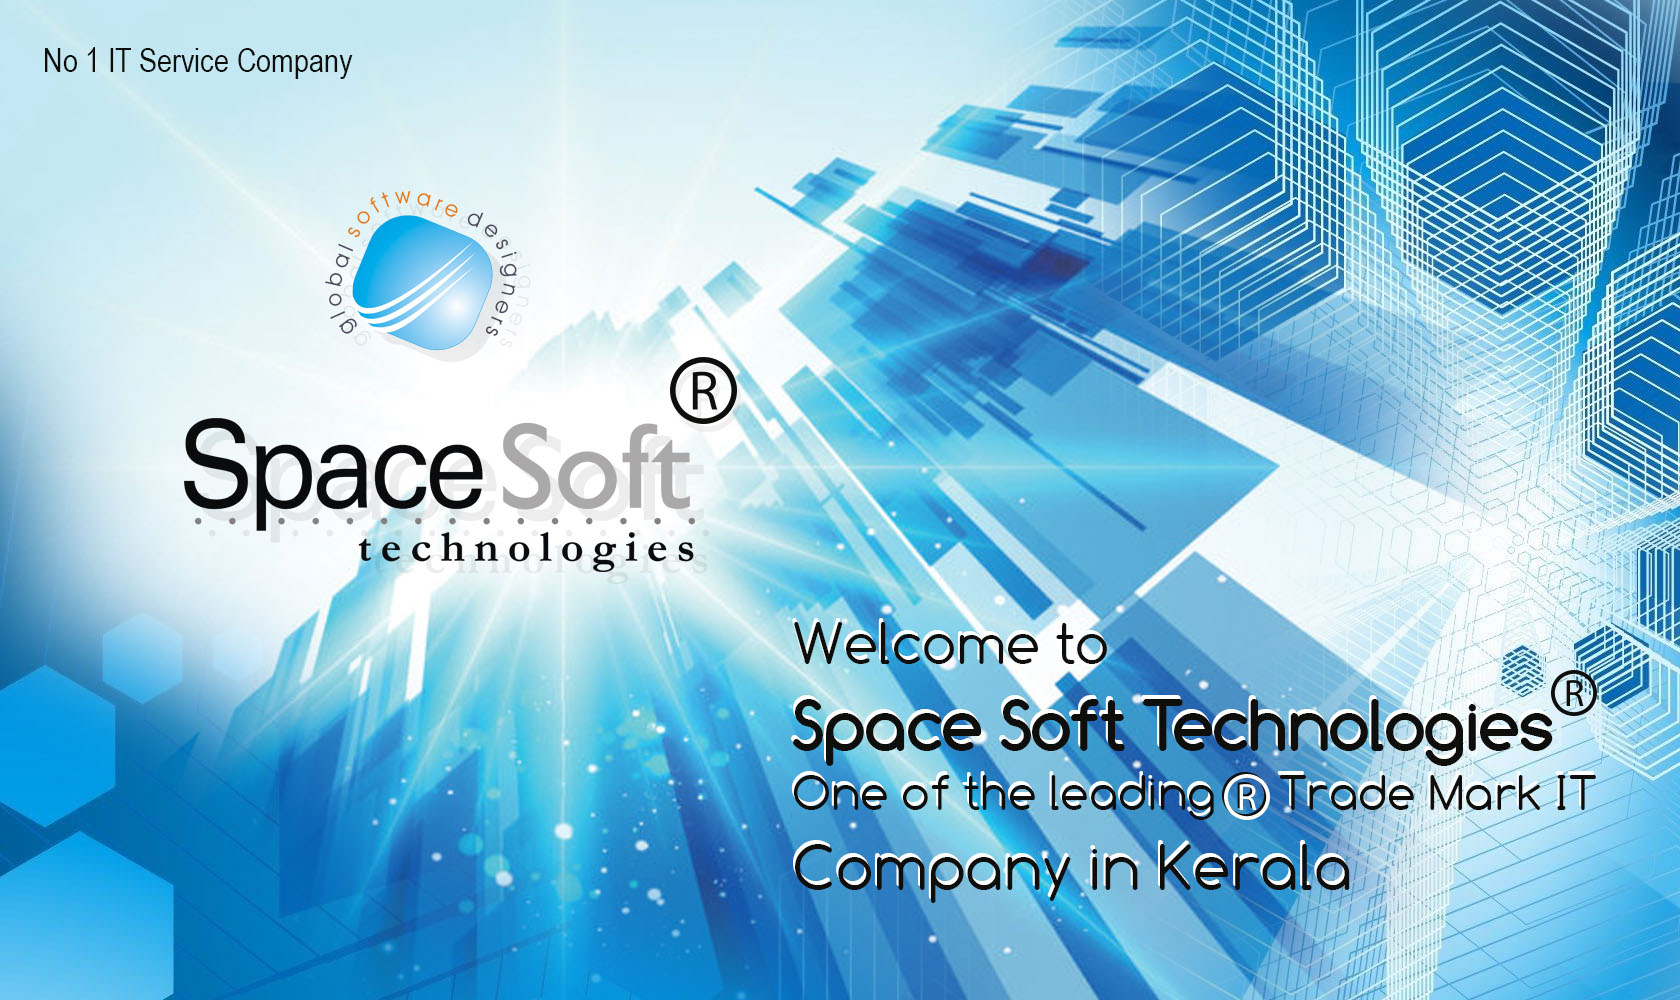 Space Soft Technologies Web Design Development Company In Thrissur Kerala Android And Ios Development Thrissur E Commerce Shopping Website Thrissur Kerala Taxi Booking App Thrissur Kerala Restaurant Hotel Booking App Thrissur Kerala